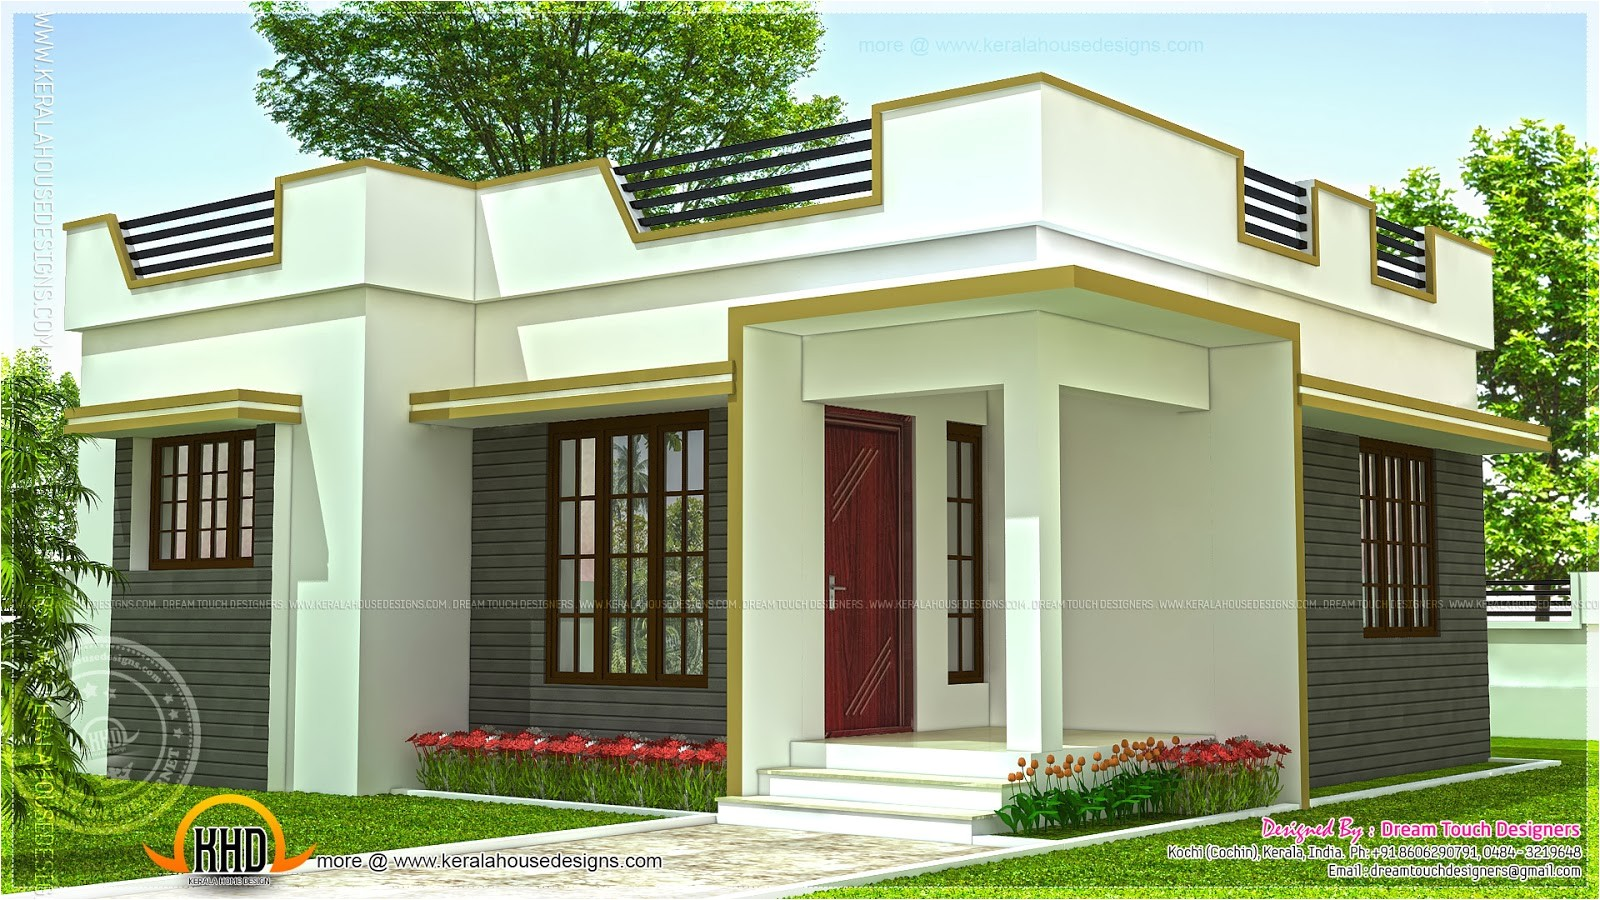 small and simple but beautiful house